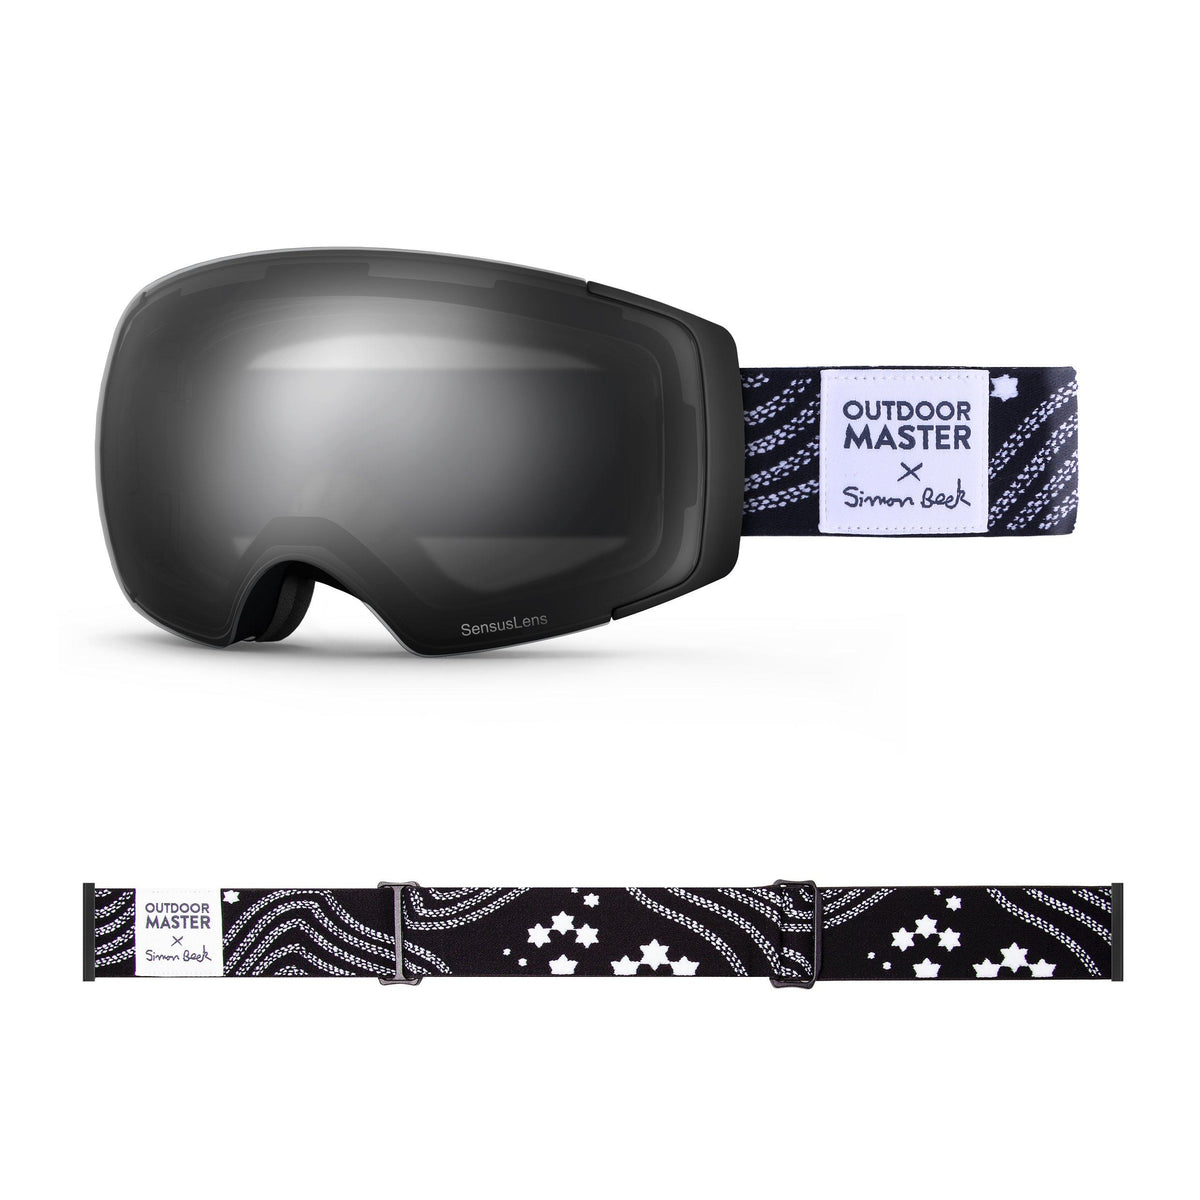 OutdoorMaster x Simon Beck Ski Goggles Pro Series - Snowshoeing Art Limited Edition OutdoorMaster SensusLens VLT 16-80% Photochromatic clear to Grey Star Road-Black